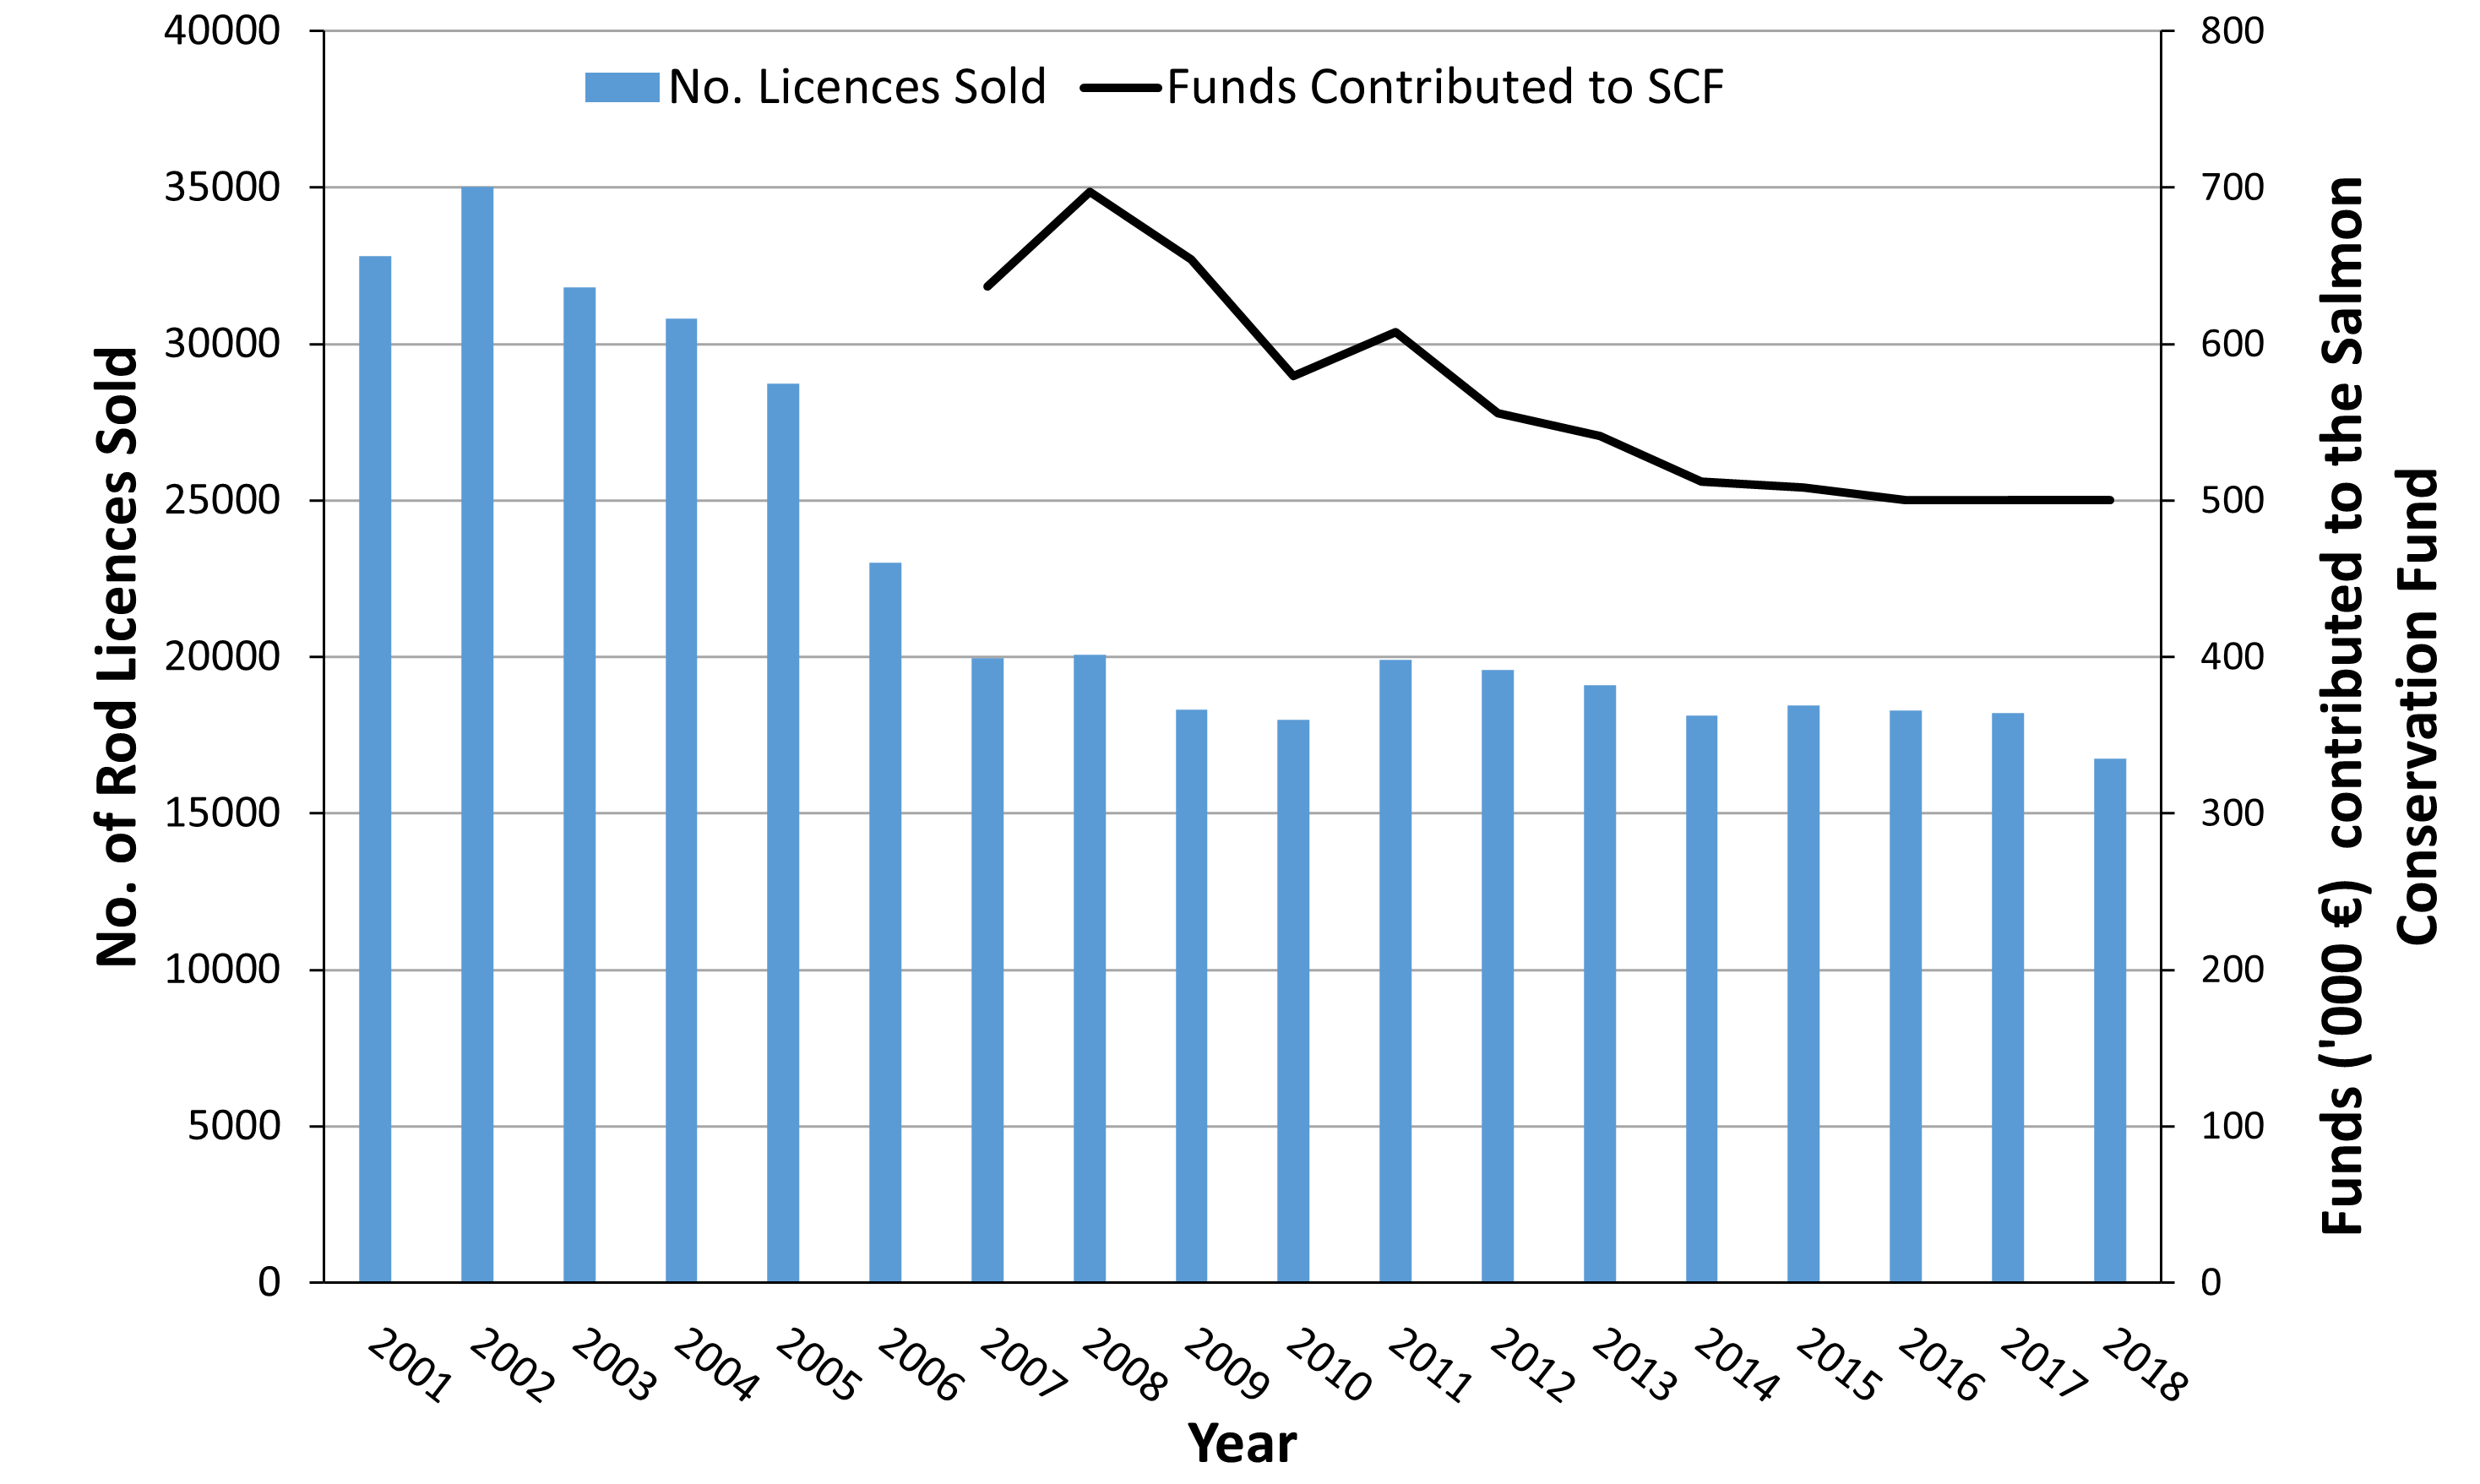 Chart F.3.i. Number of rod licences issued for salmon and sea trout fishing